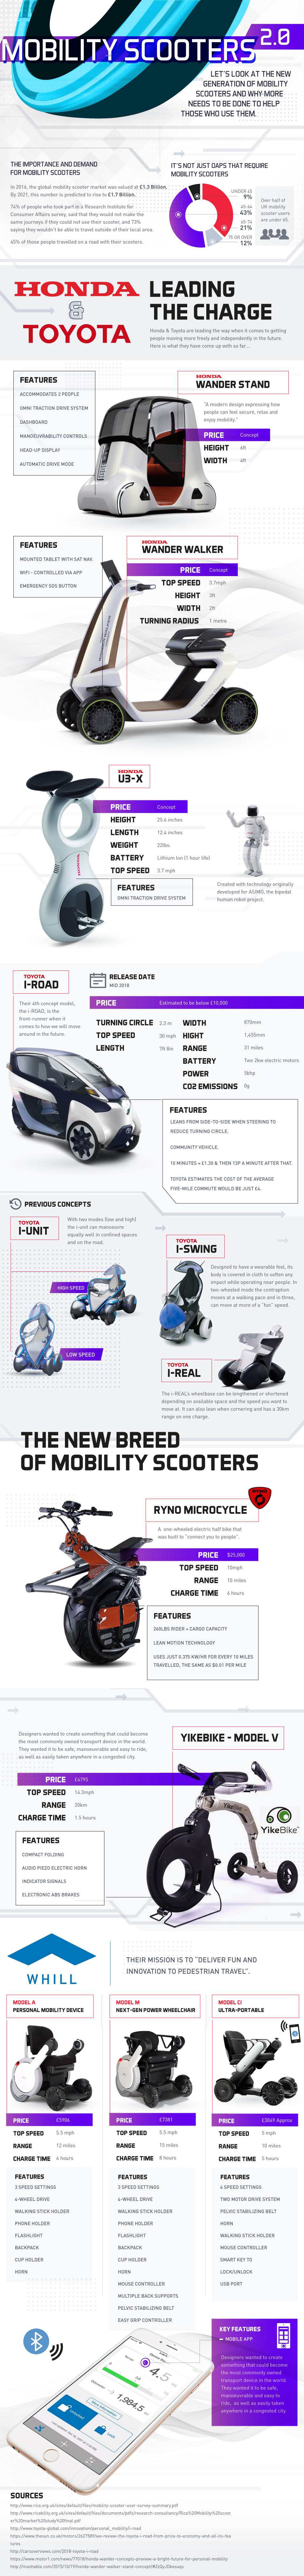 Mobility Scooters 2.0